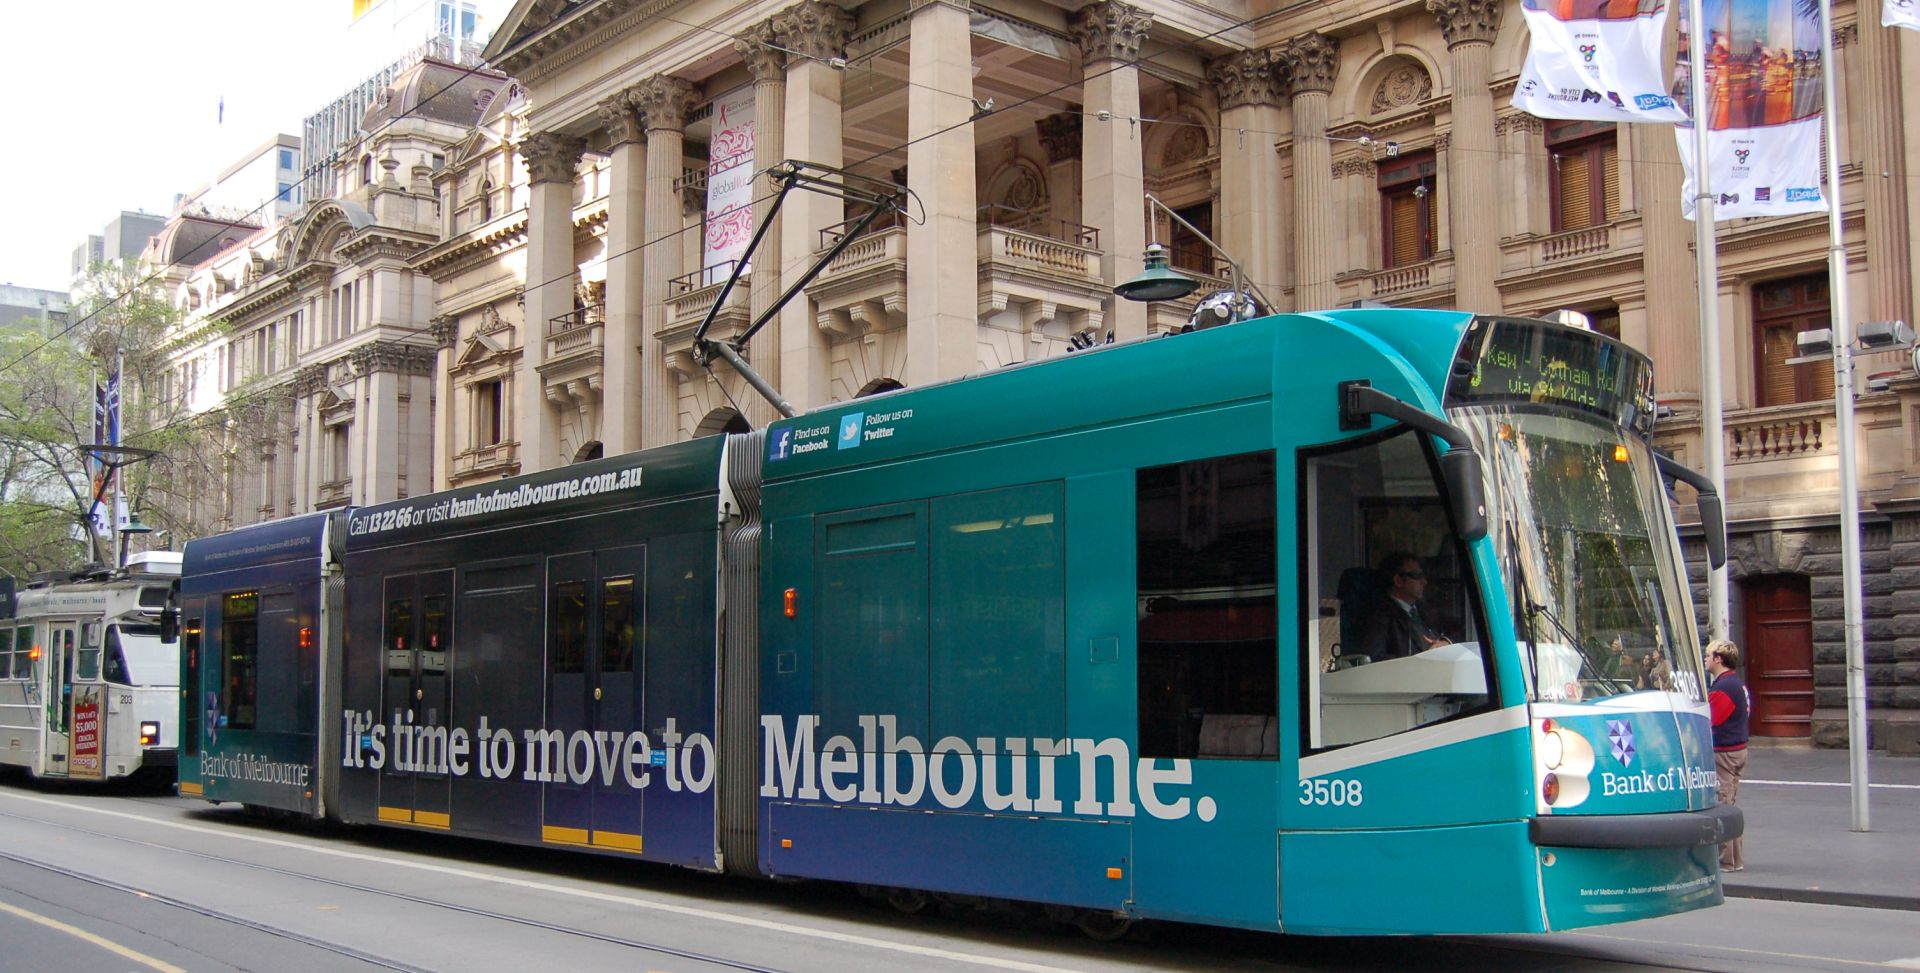 "Photo of a tram in Melbourne front of the city hall. On the tram is an advertisement reading ""It's time to move to Melbourne"" on the side"